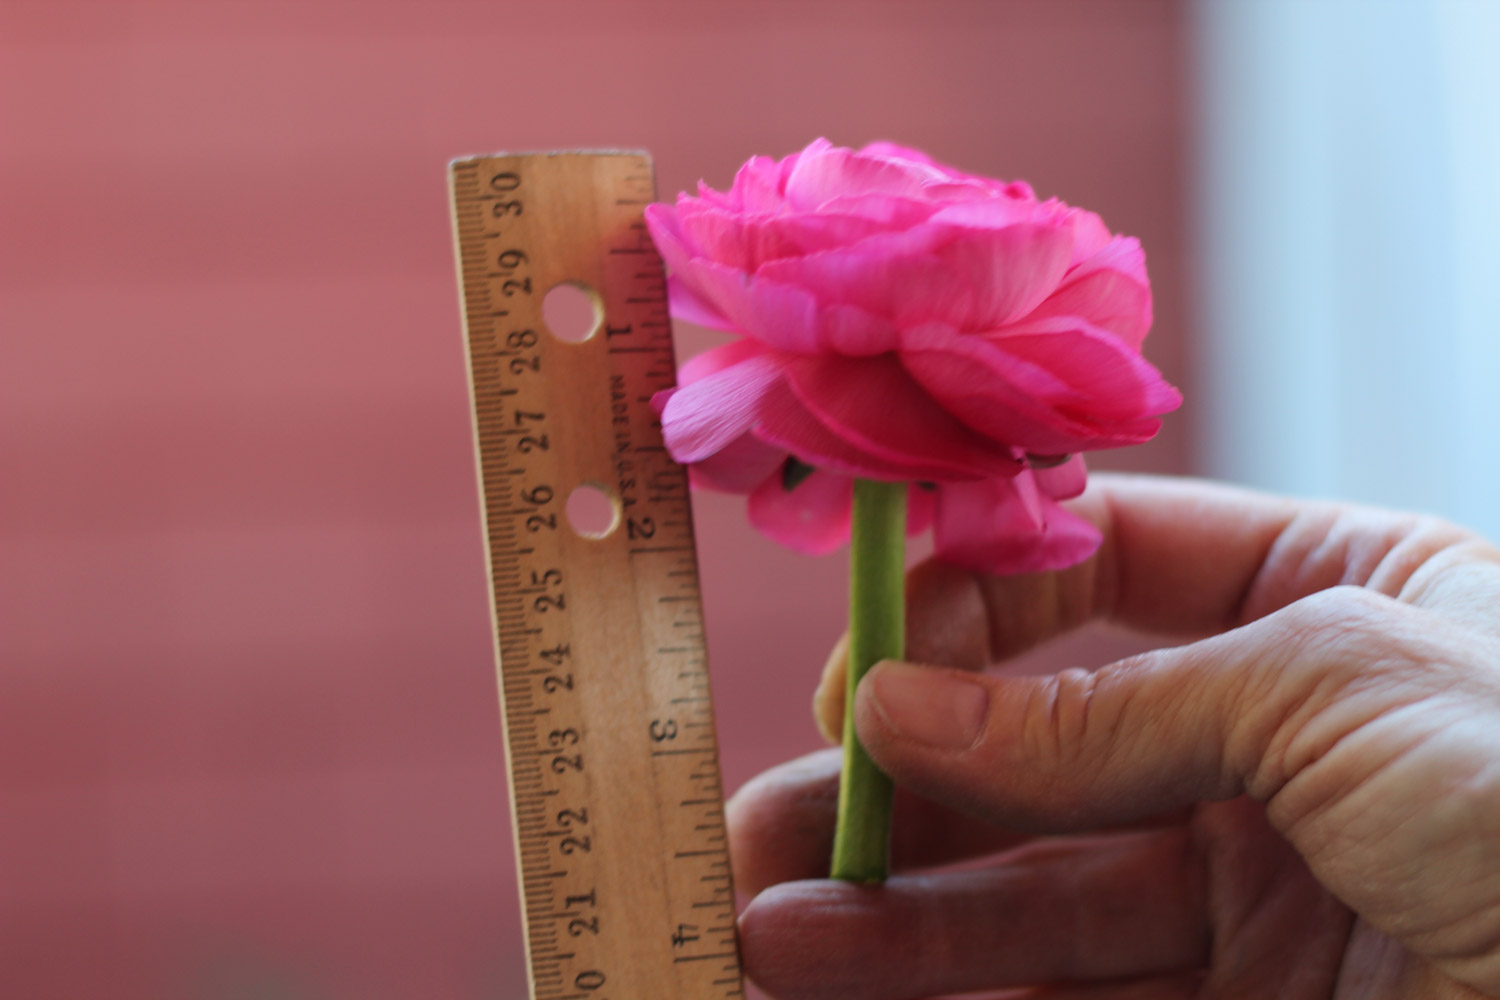 Vary the lengths. Blooms should be4 - 5 inches.